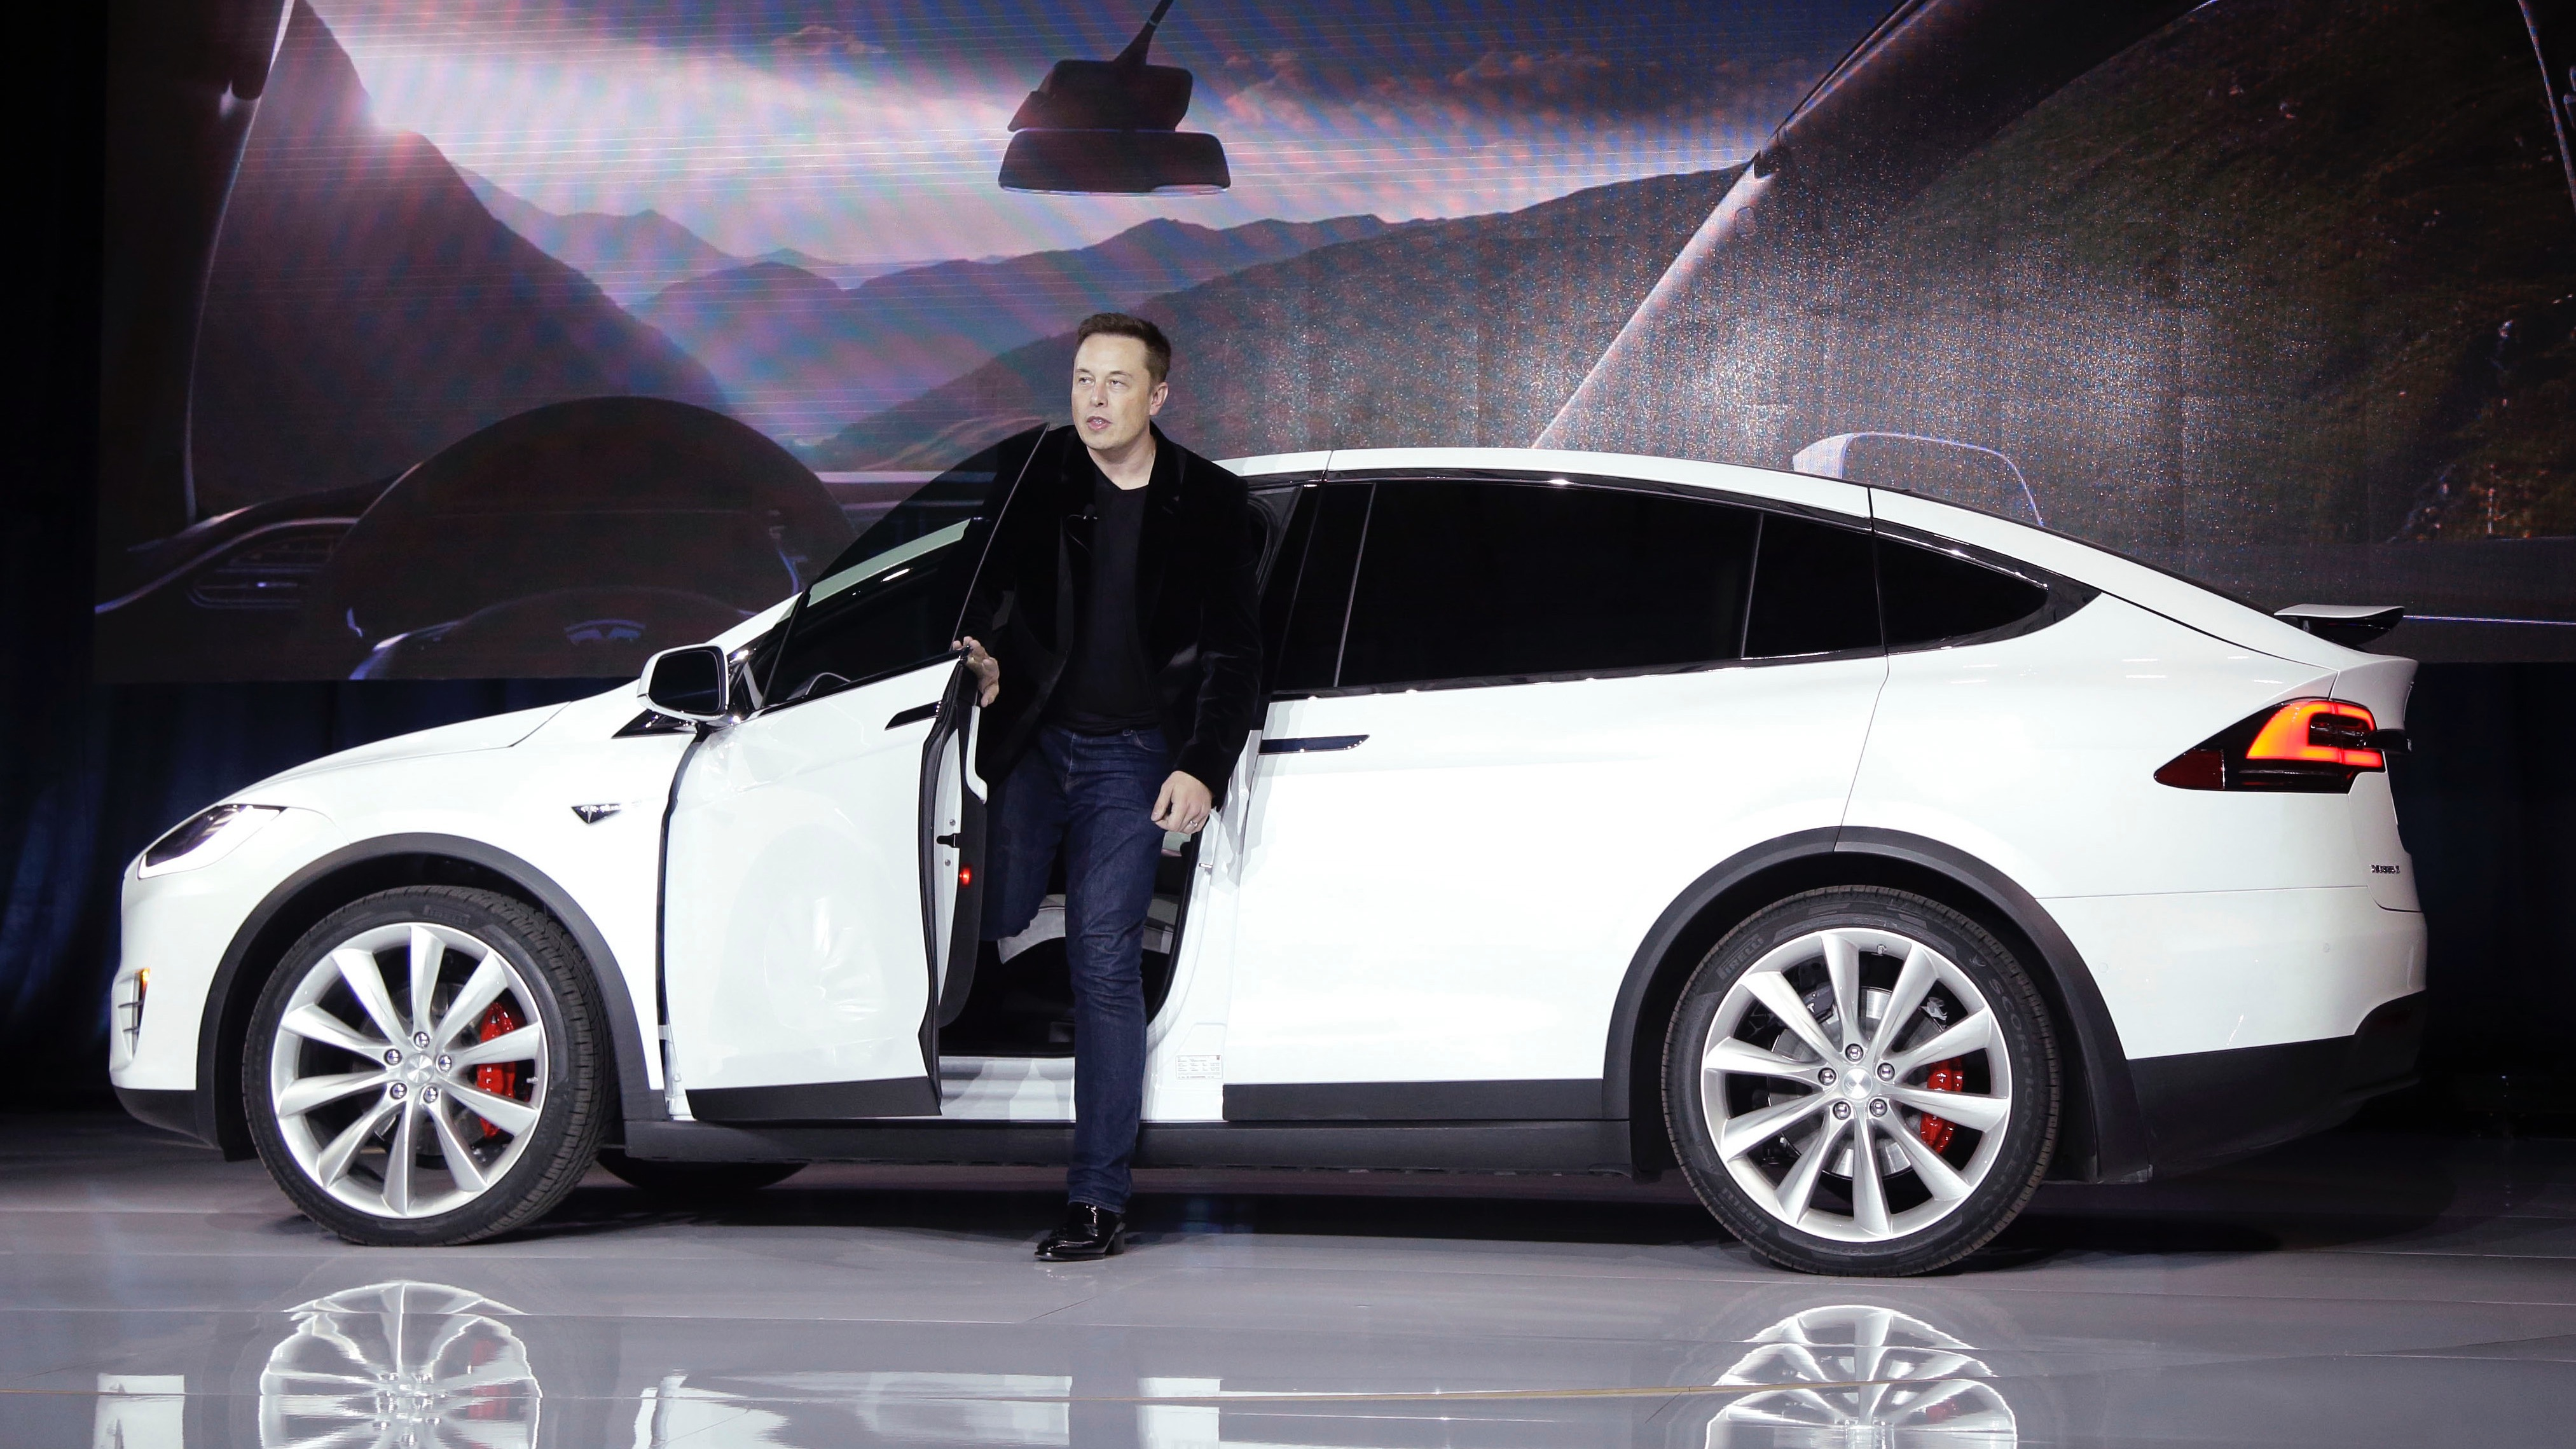 """FILE - In this Sept. 29, 2015 file photo, Elon Musk, CEO of Tesla Motors Inc., introduces the Model X car at the company's headquarters in Fremont, Calif. A Tesla in Autopilot mode can drive itself but it's not a """"self-driving"""" vehicle, at least as far as safety regulators are concerned. So, instead of coming under heavy government scrutiny before being sold to the public, Tesla can mass-produce cars that automatically adjust speed with the flow of traffic, keep their lane and slam the brakes in an emergency. (AP Photo/Marcio Jose Sanchez, File)"""